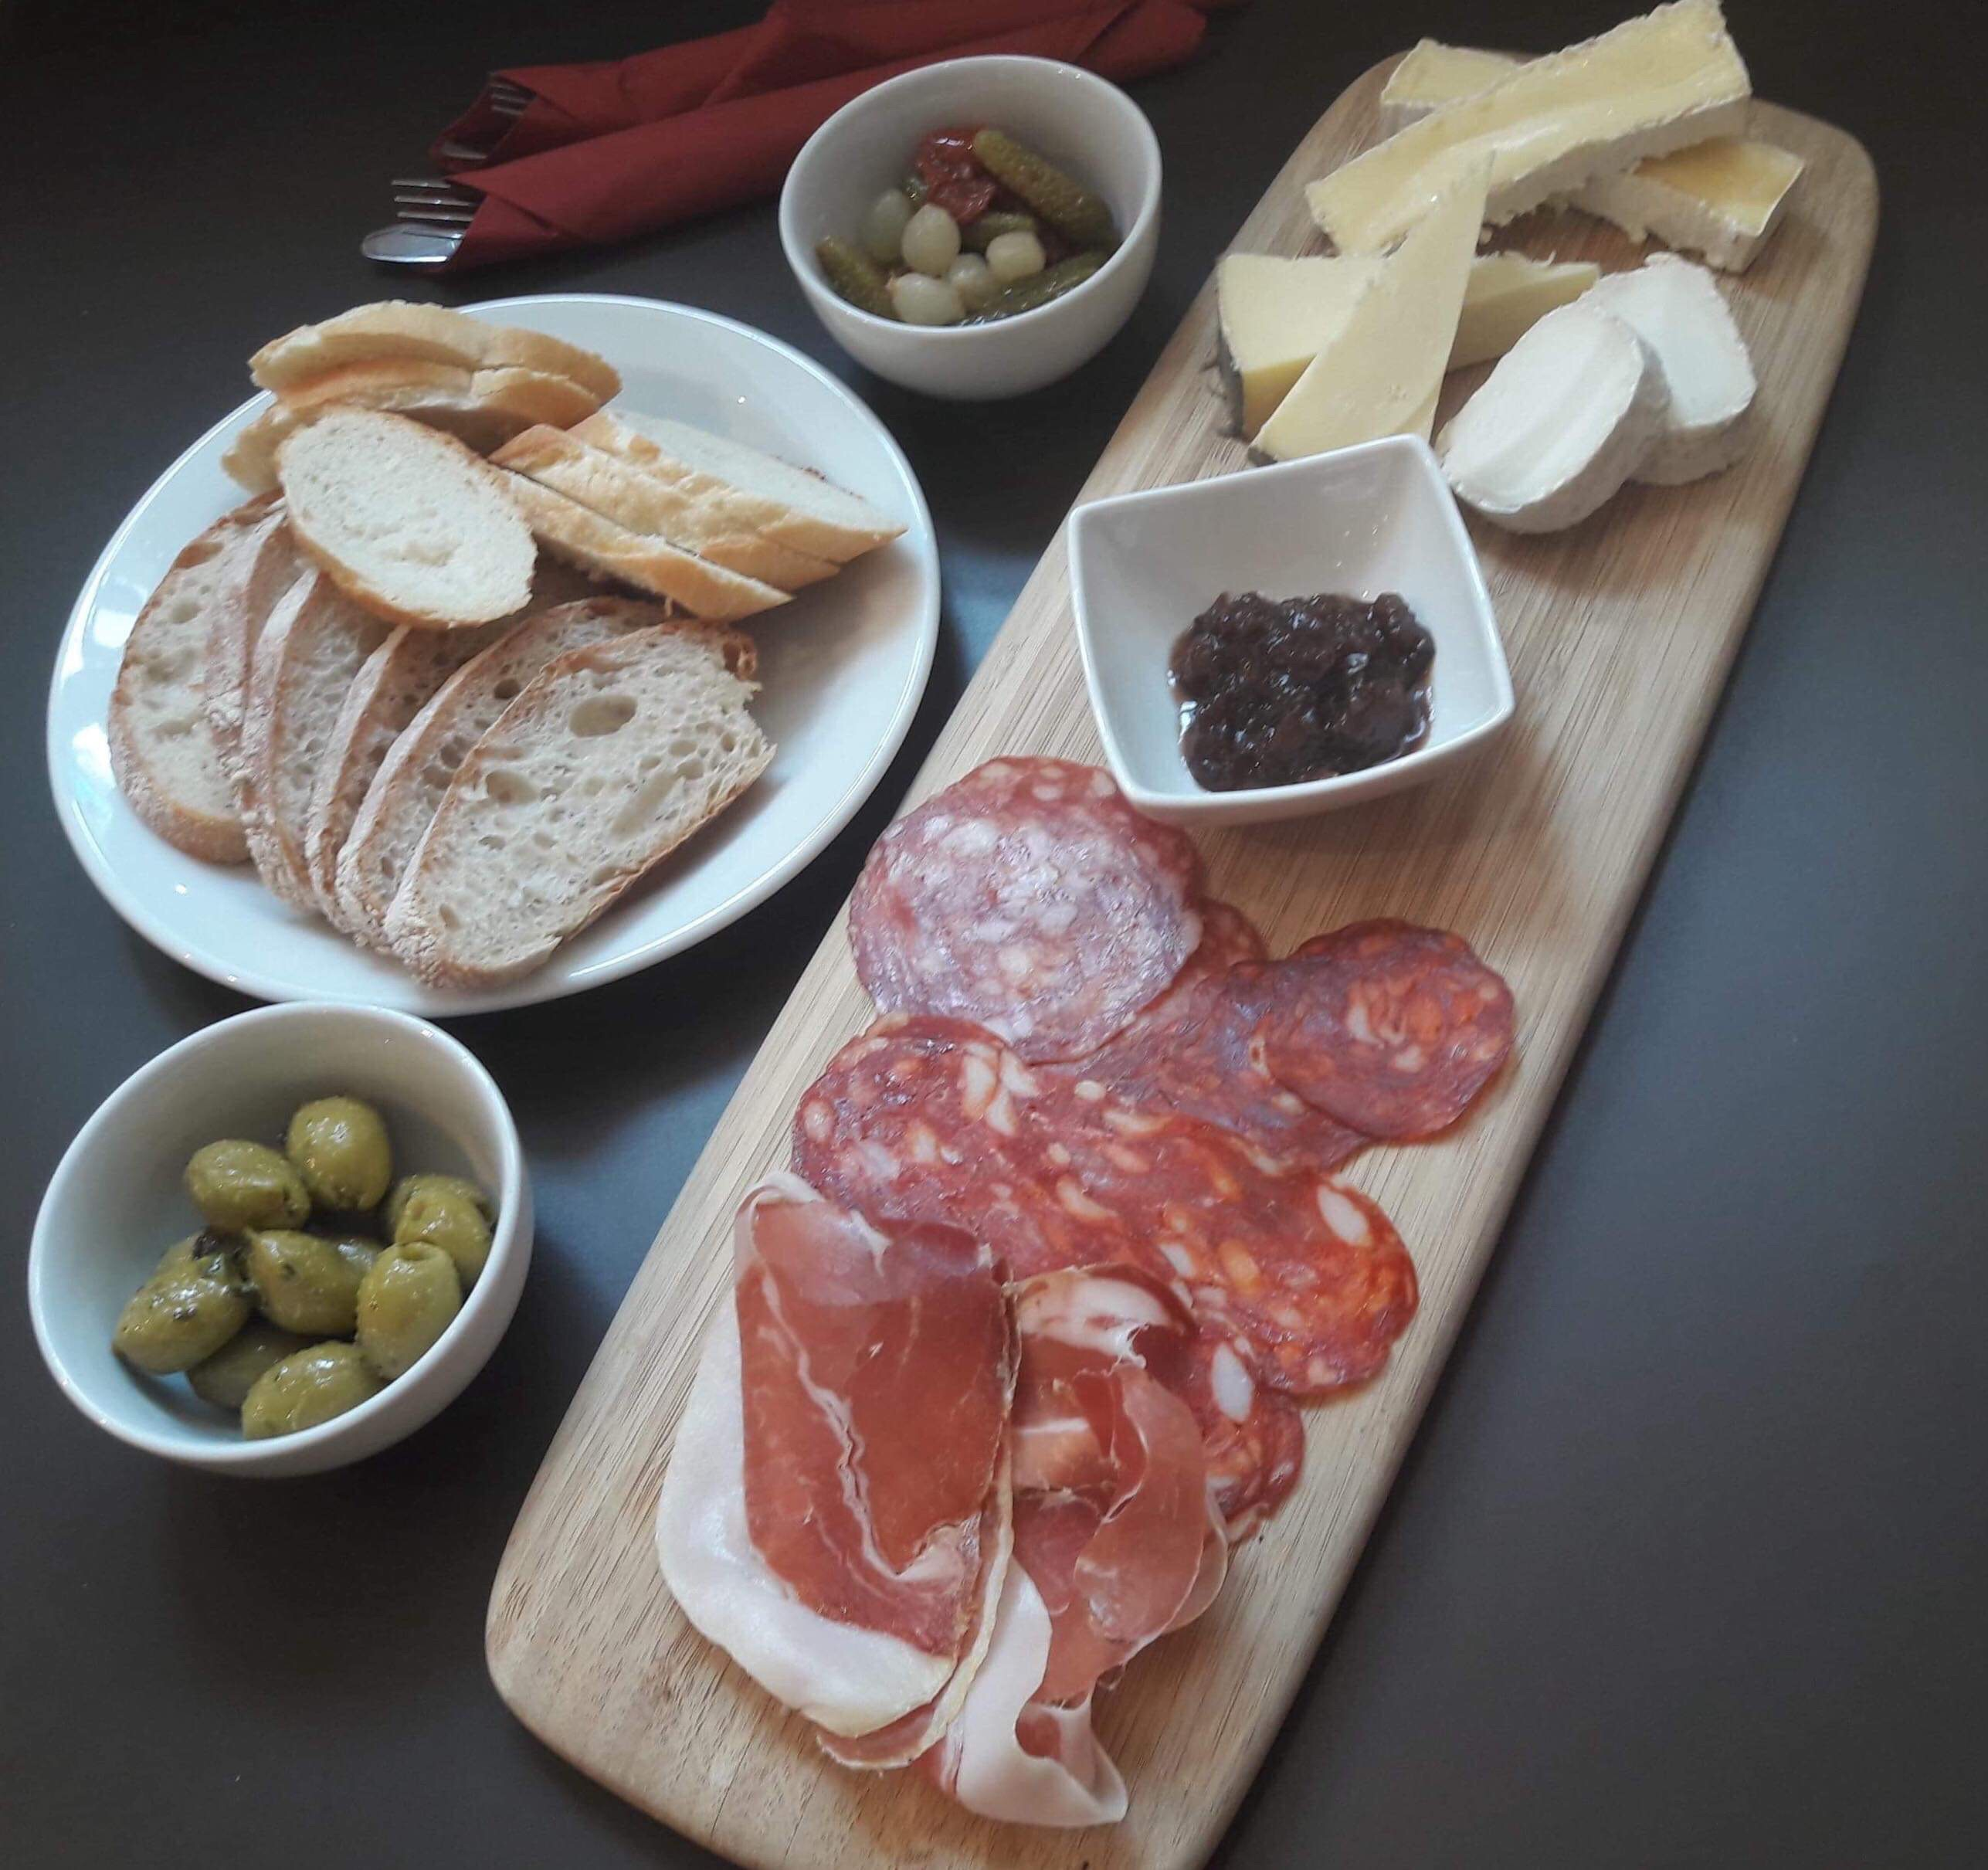 The sharing platter from our Lunch Menu